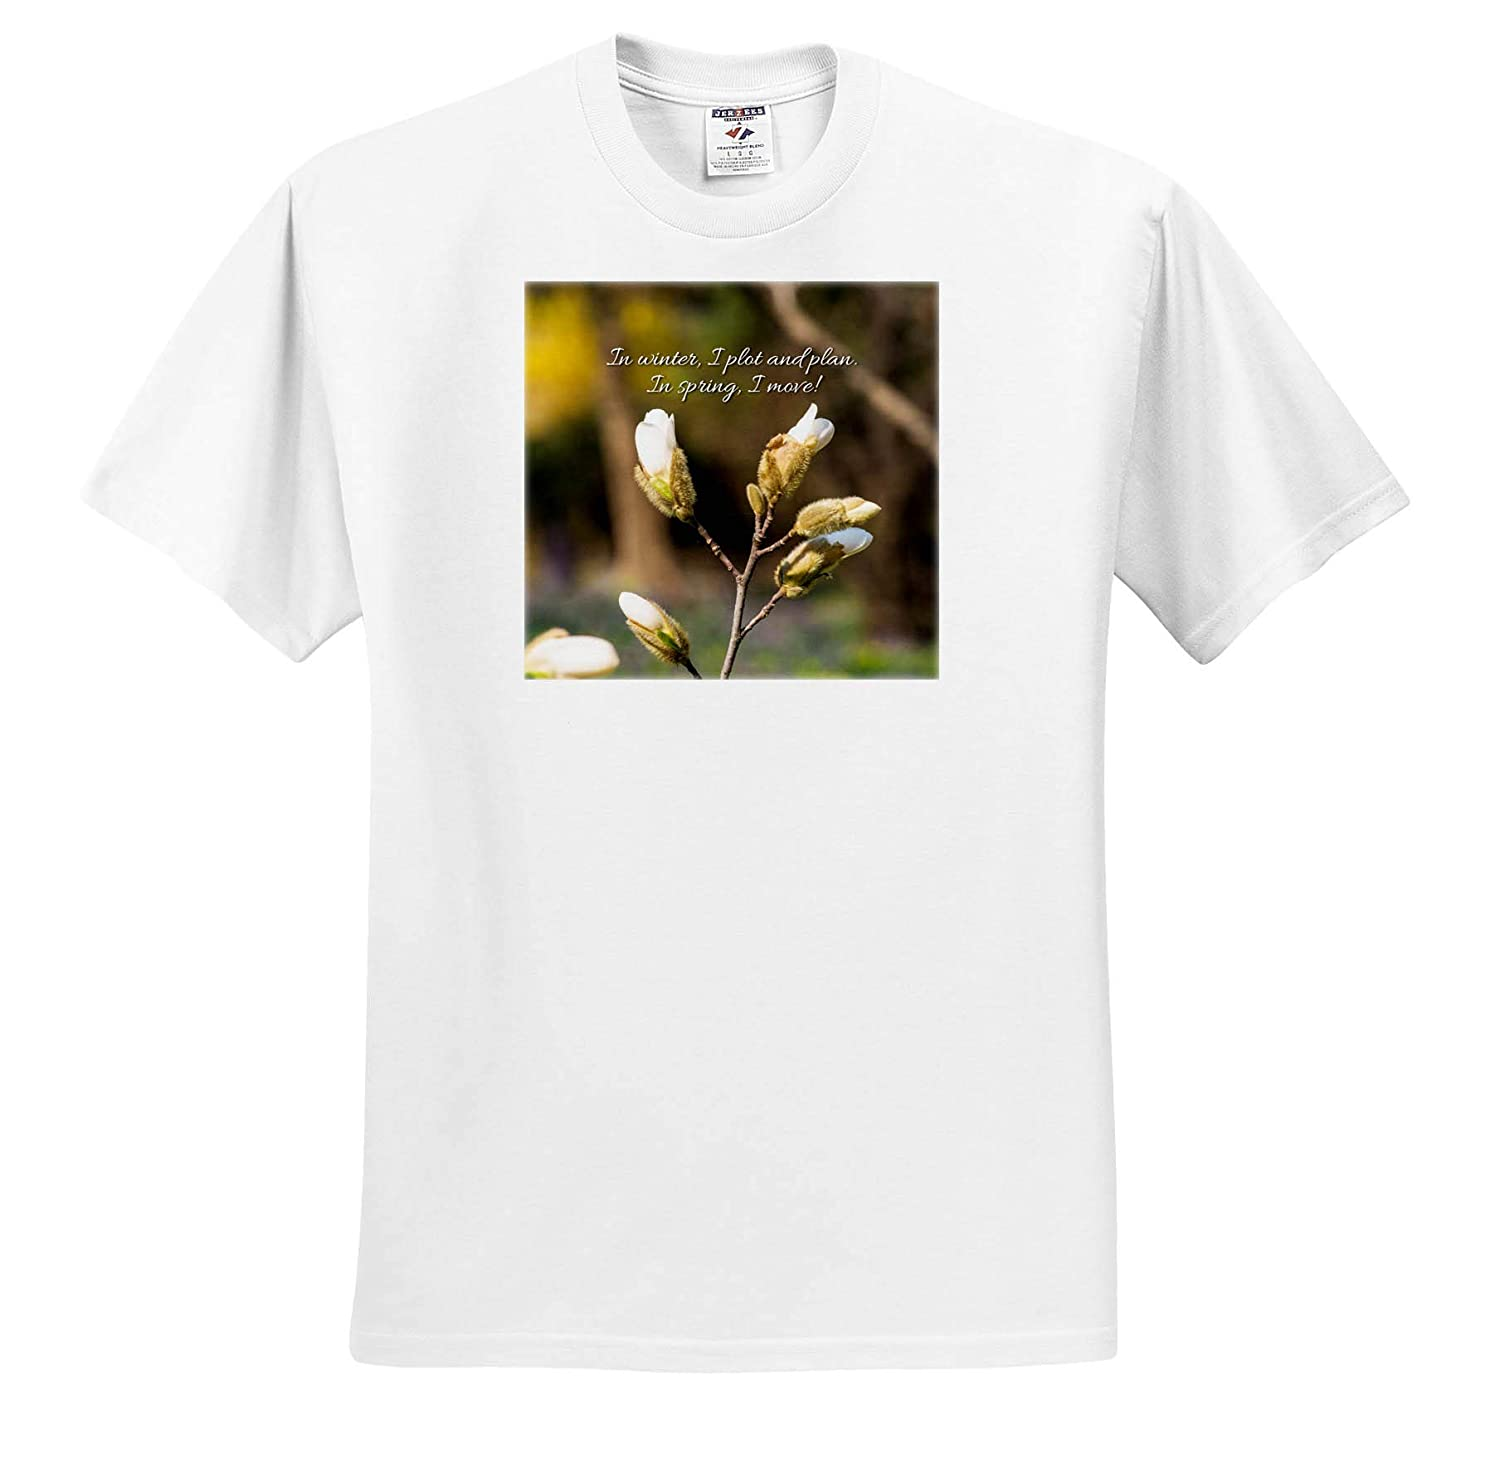 Sayings About Spring in Winter T-Shirts 3dRose Alexis Design Magnolia Tree Buds in Spring I plot and Plan I Move